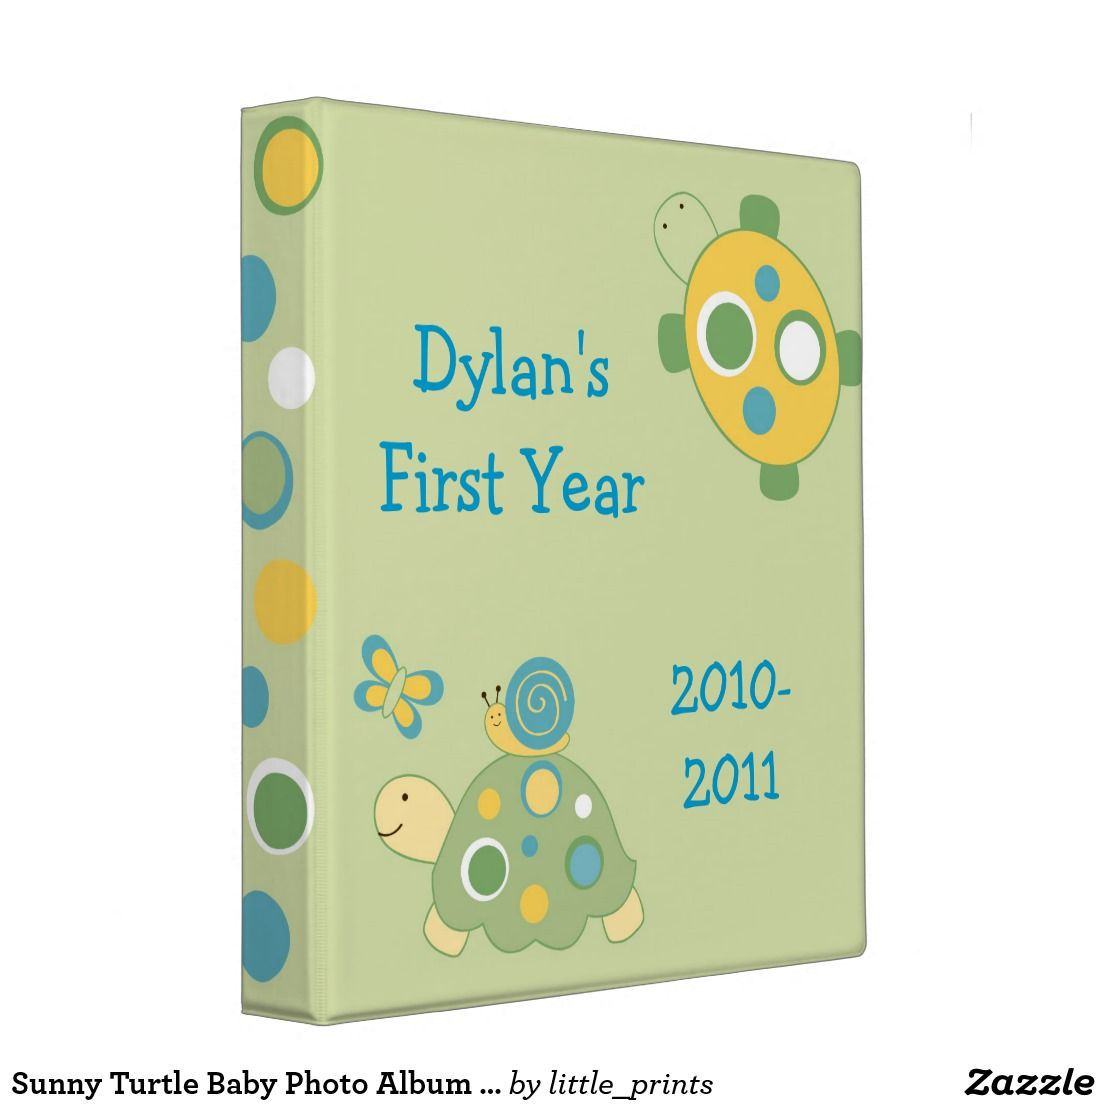 Sunny Turtle Baby Photo Album Scrapbook 3 Ring Binder